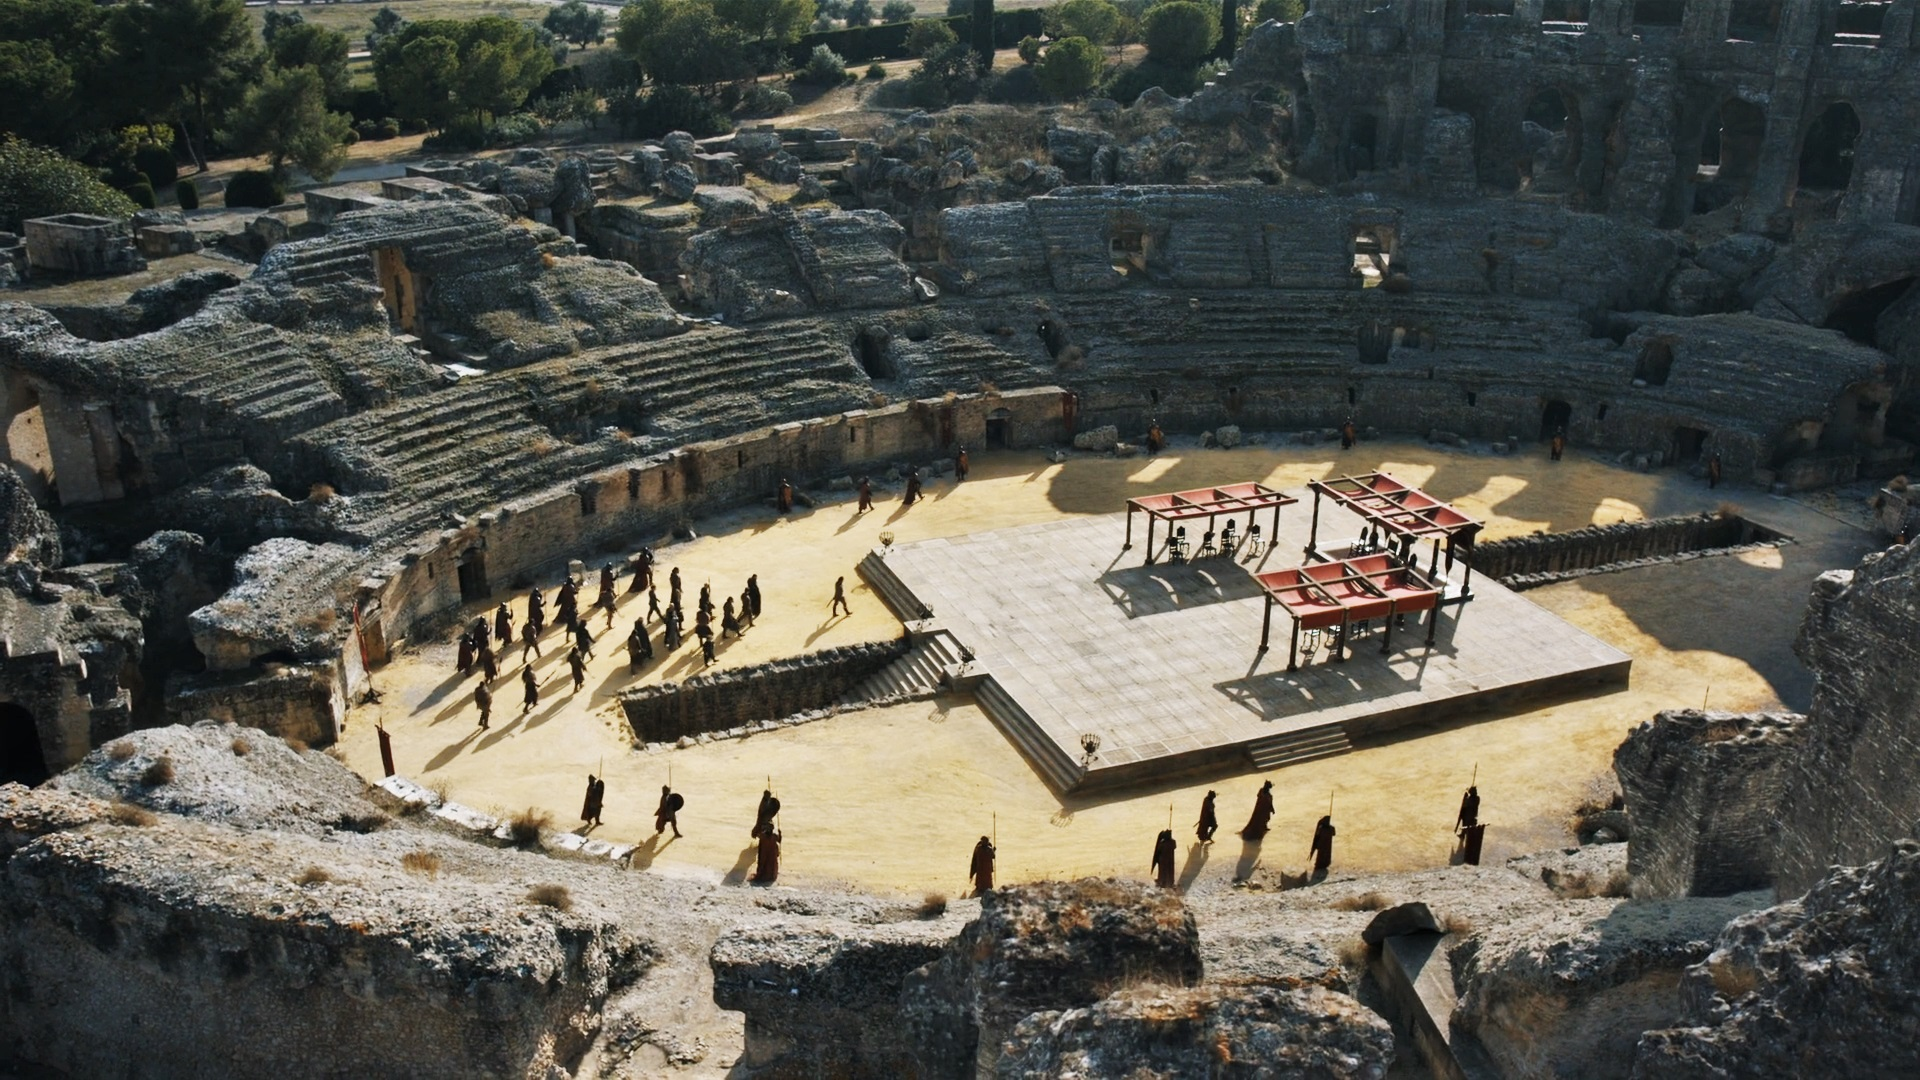 King's Landing Dragonpit 7x07 (1)